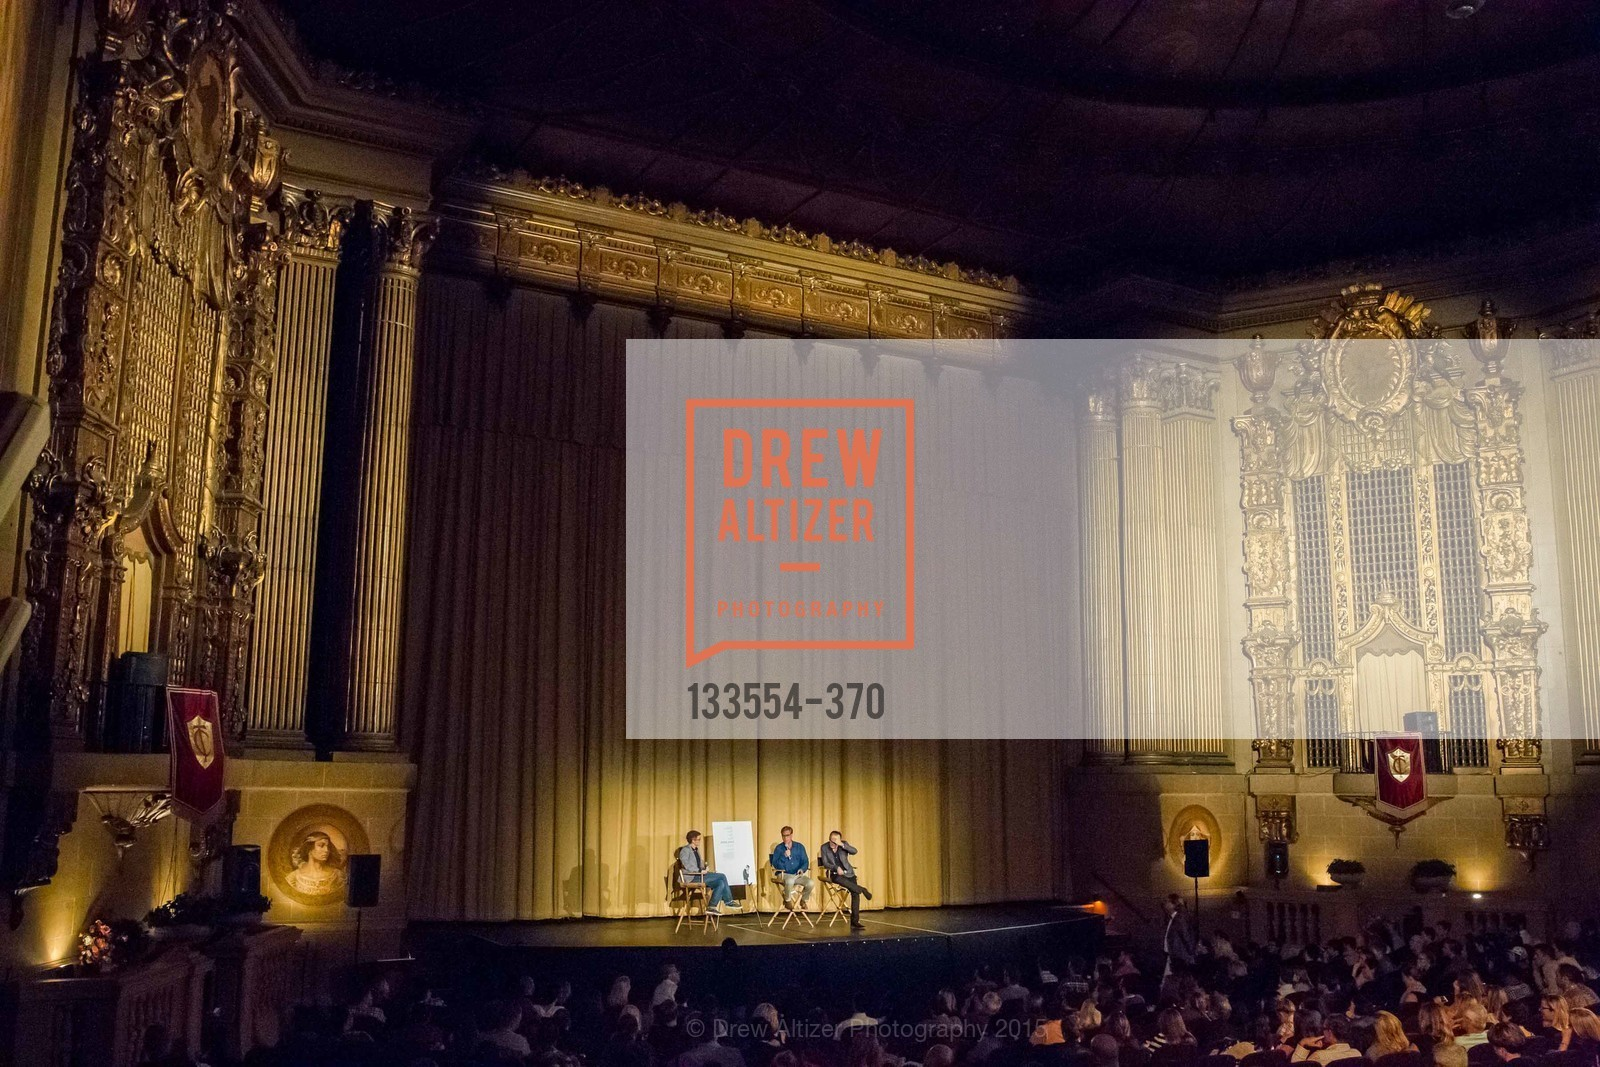 Inside The Castro Theater, SAN FRANCISCO SPECIAL SCREENING OF STEVE JOBS PRESENTED BY UNIVERSAL PICTURES, OCTOBER 9, 2015 AT THE CASTRO THEATRE, Castro Theater, October 9th, 2015,Drew Altizer, Drew Altizer Photography, full-service agency, private events, San Francisco photographer, photographer california